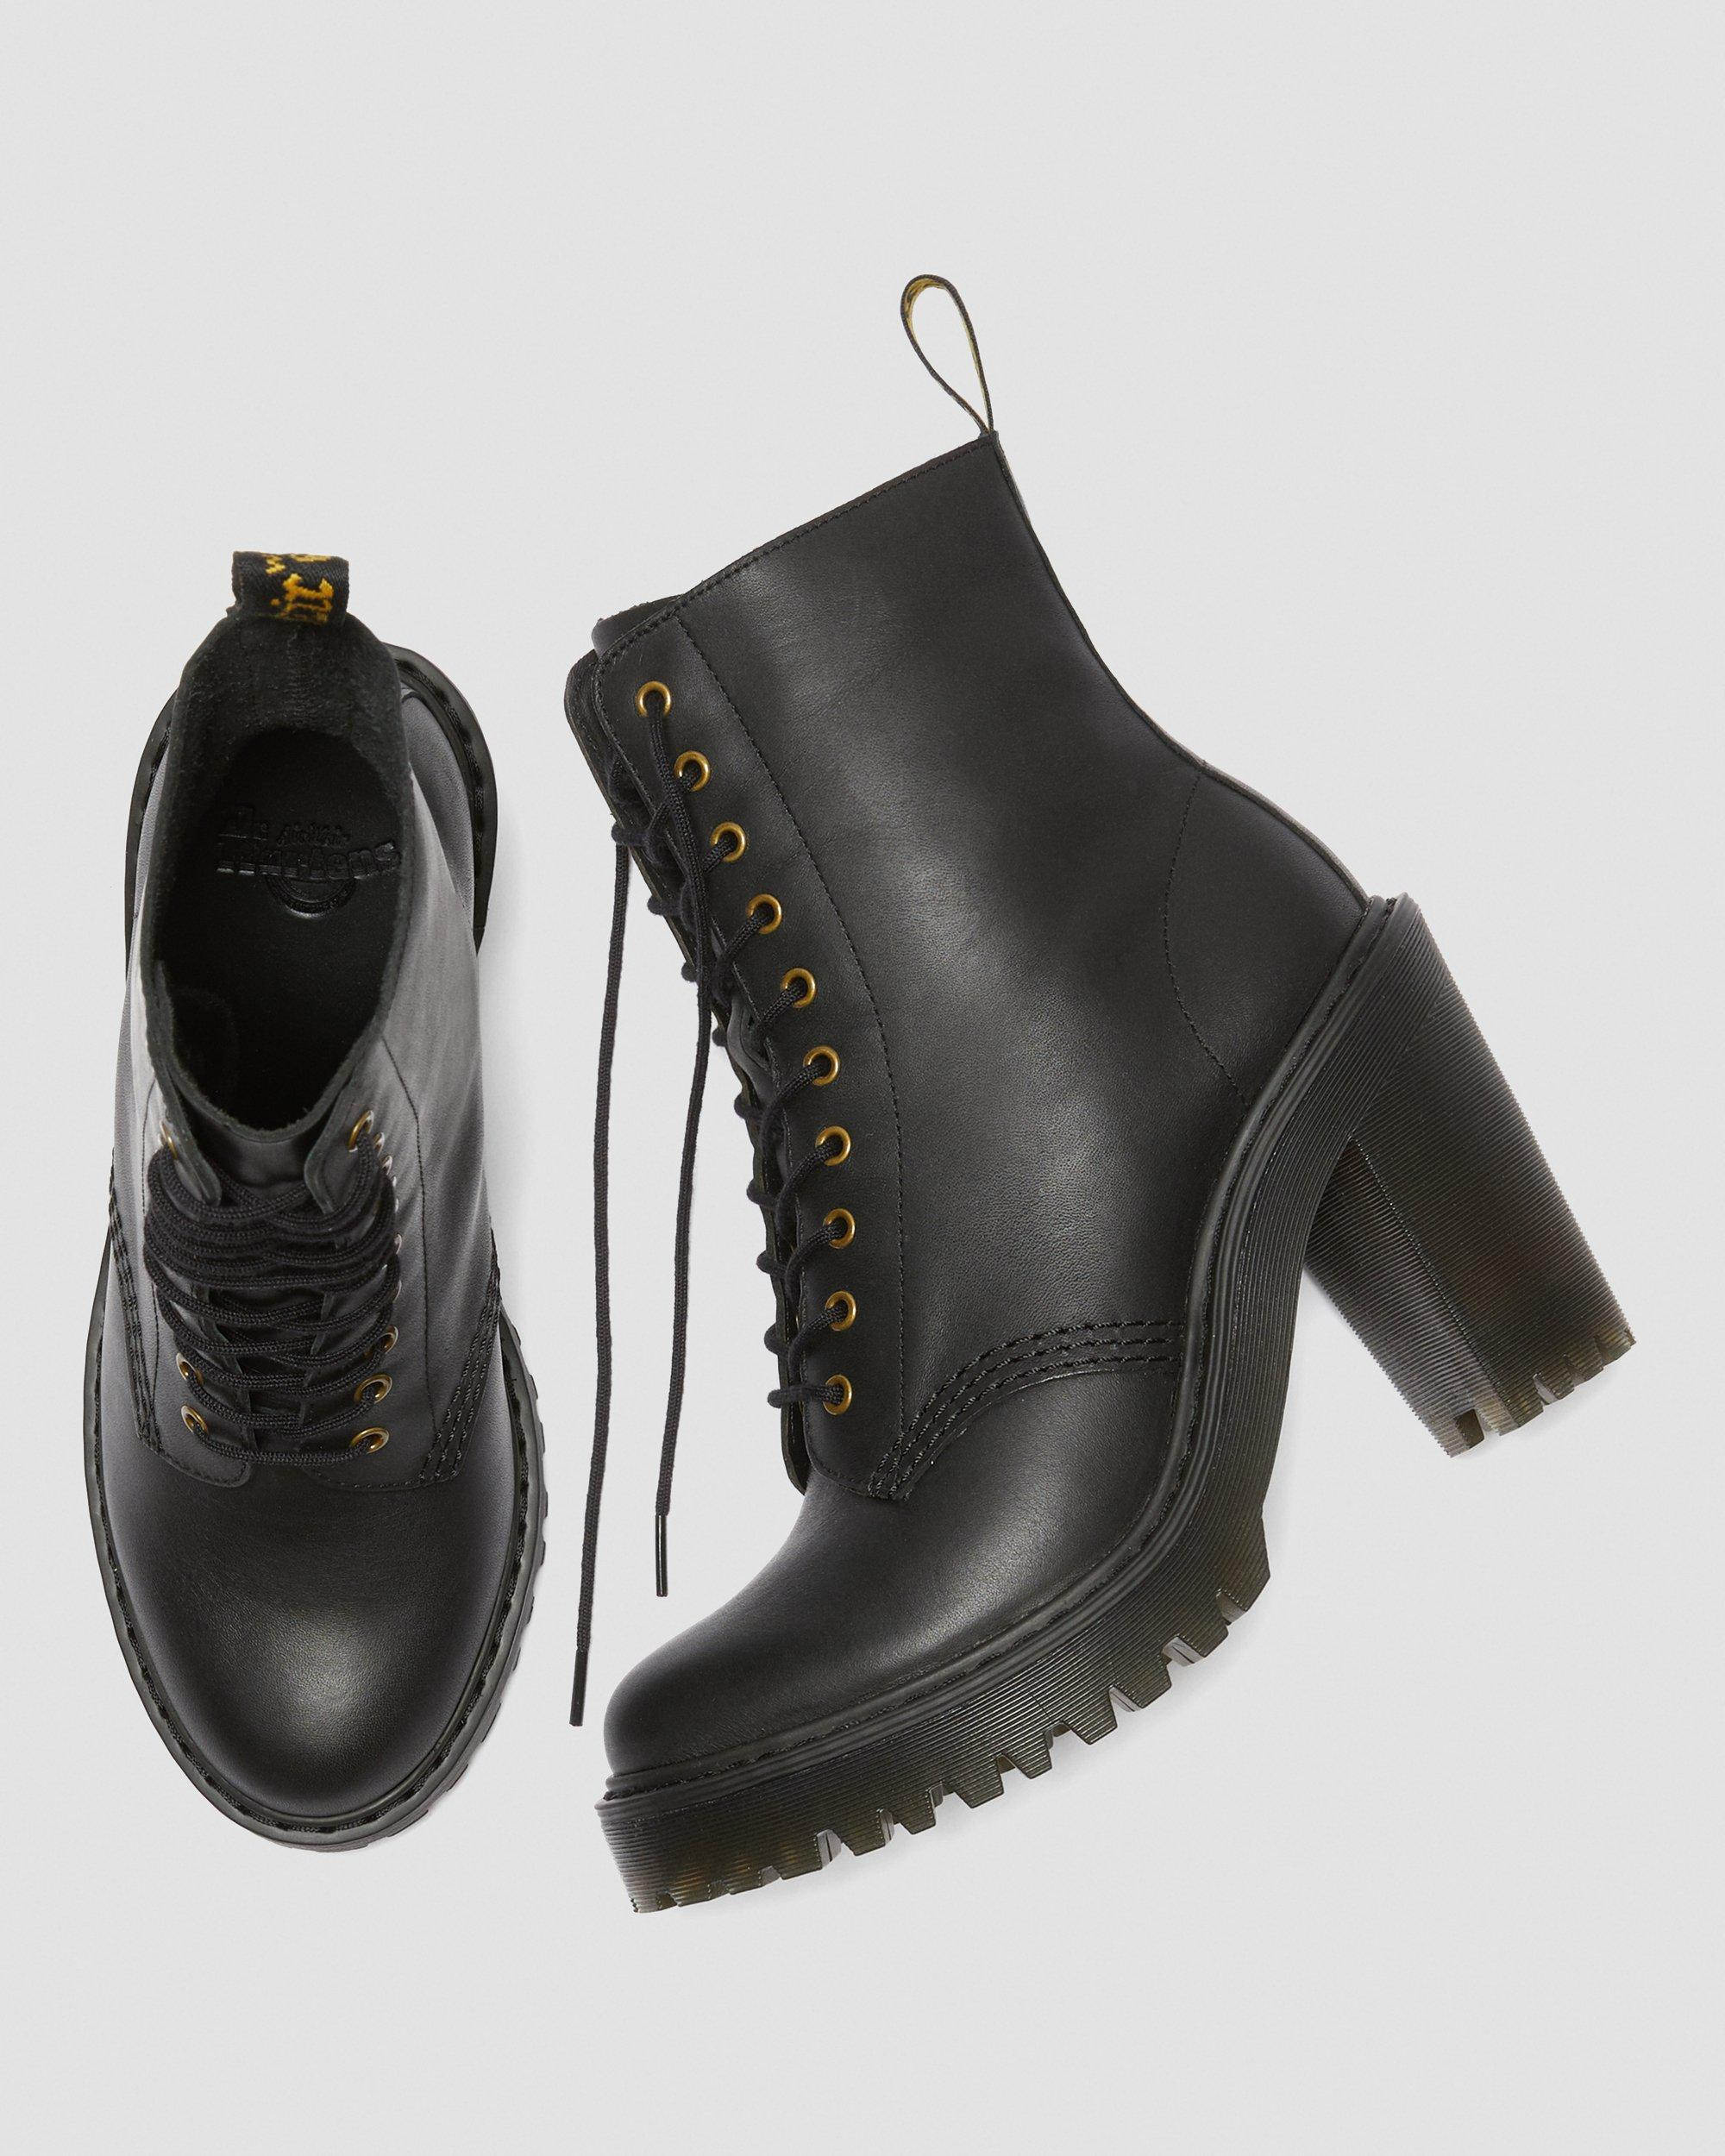 DR MARTENS KENDRA WOMEN'S LEATHER HEELED BOOTS